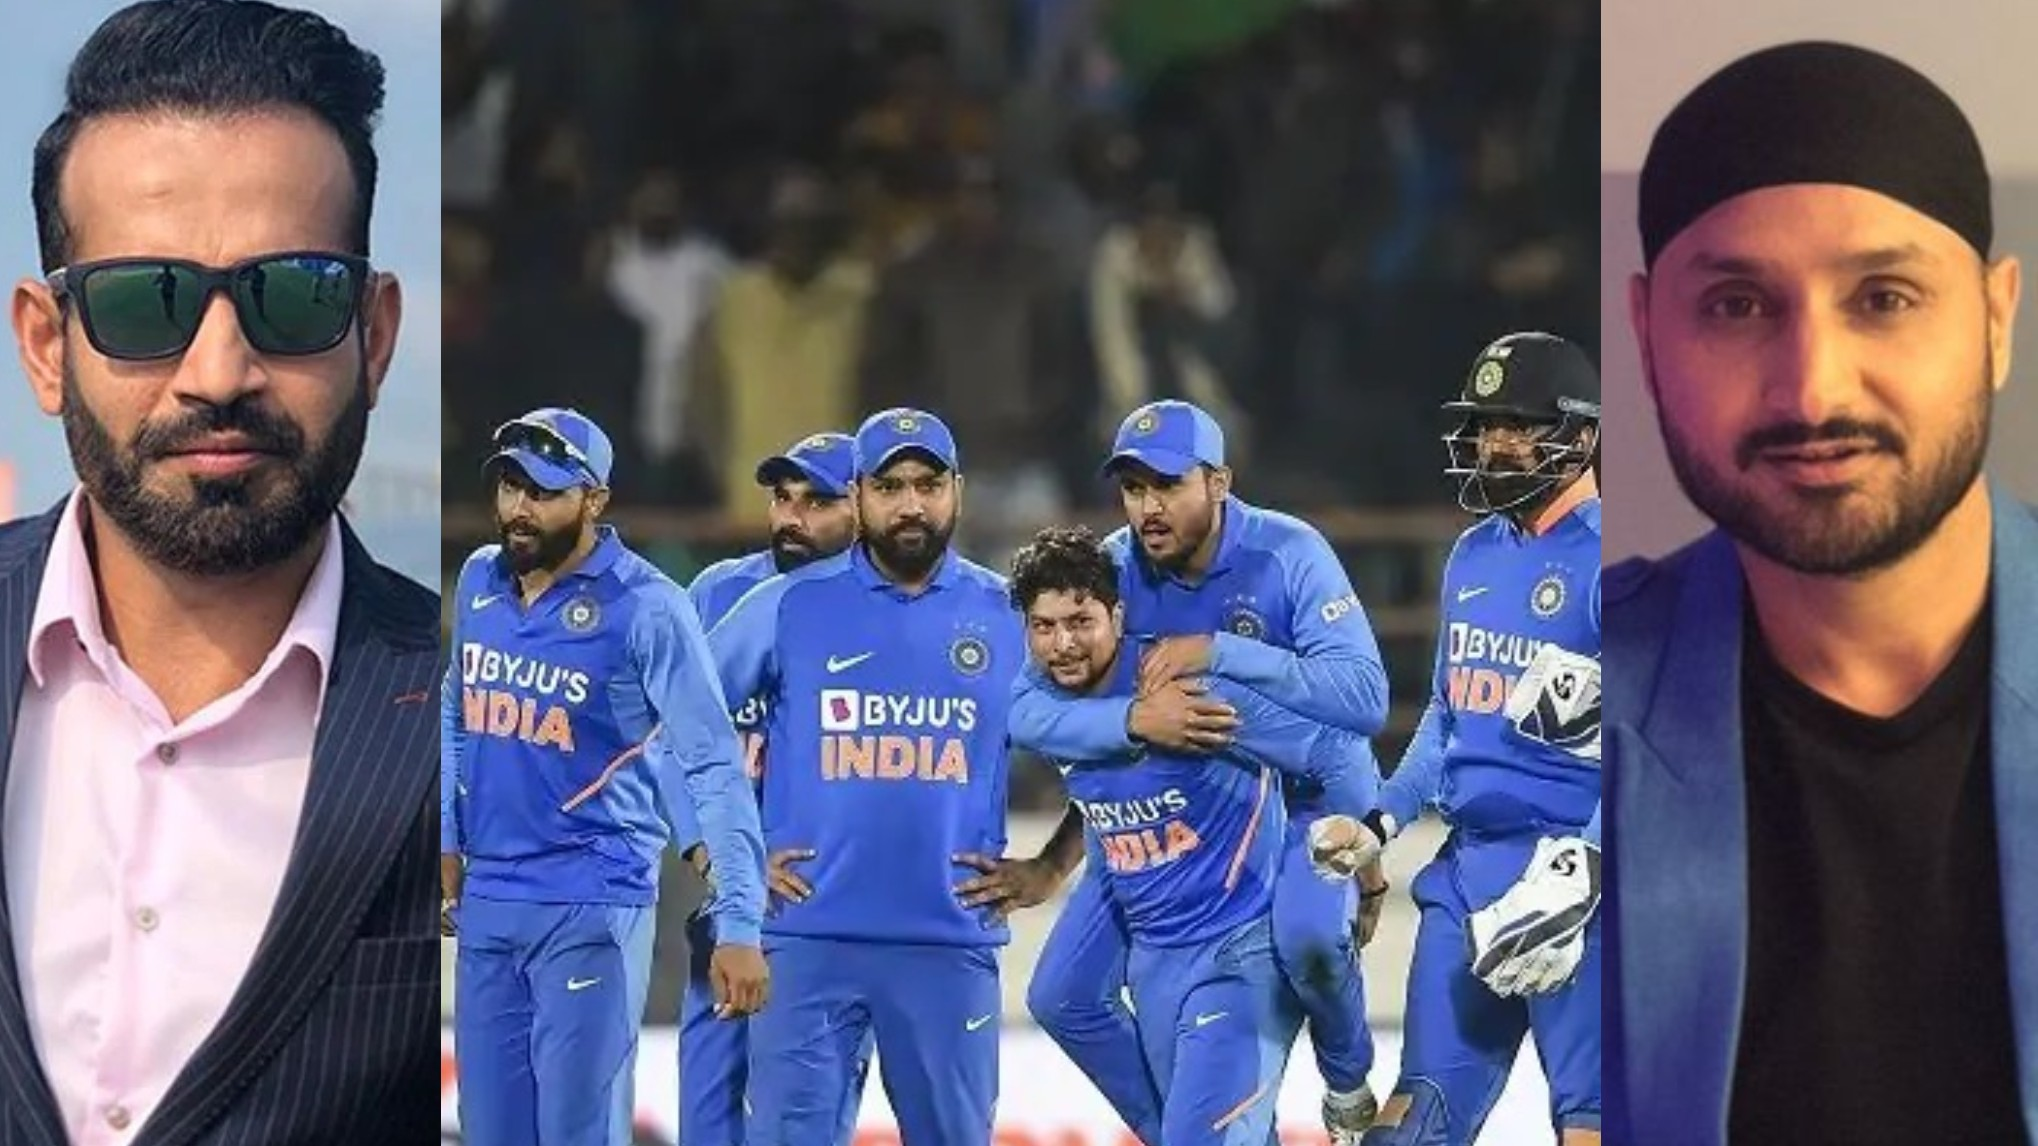 IND v AUS 2020: Cricket fraternity praises Team India's 36-run win in Rajkot ODI; series leveled 1-1